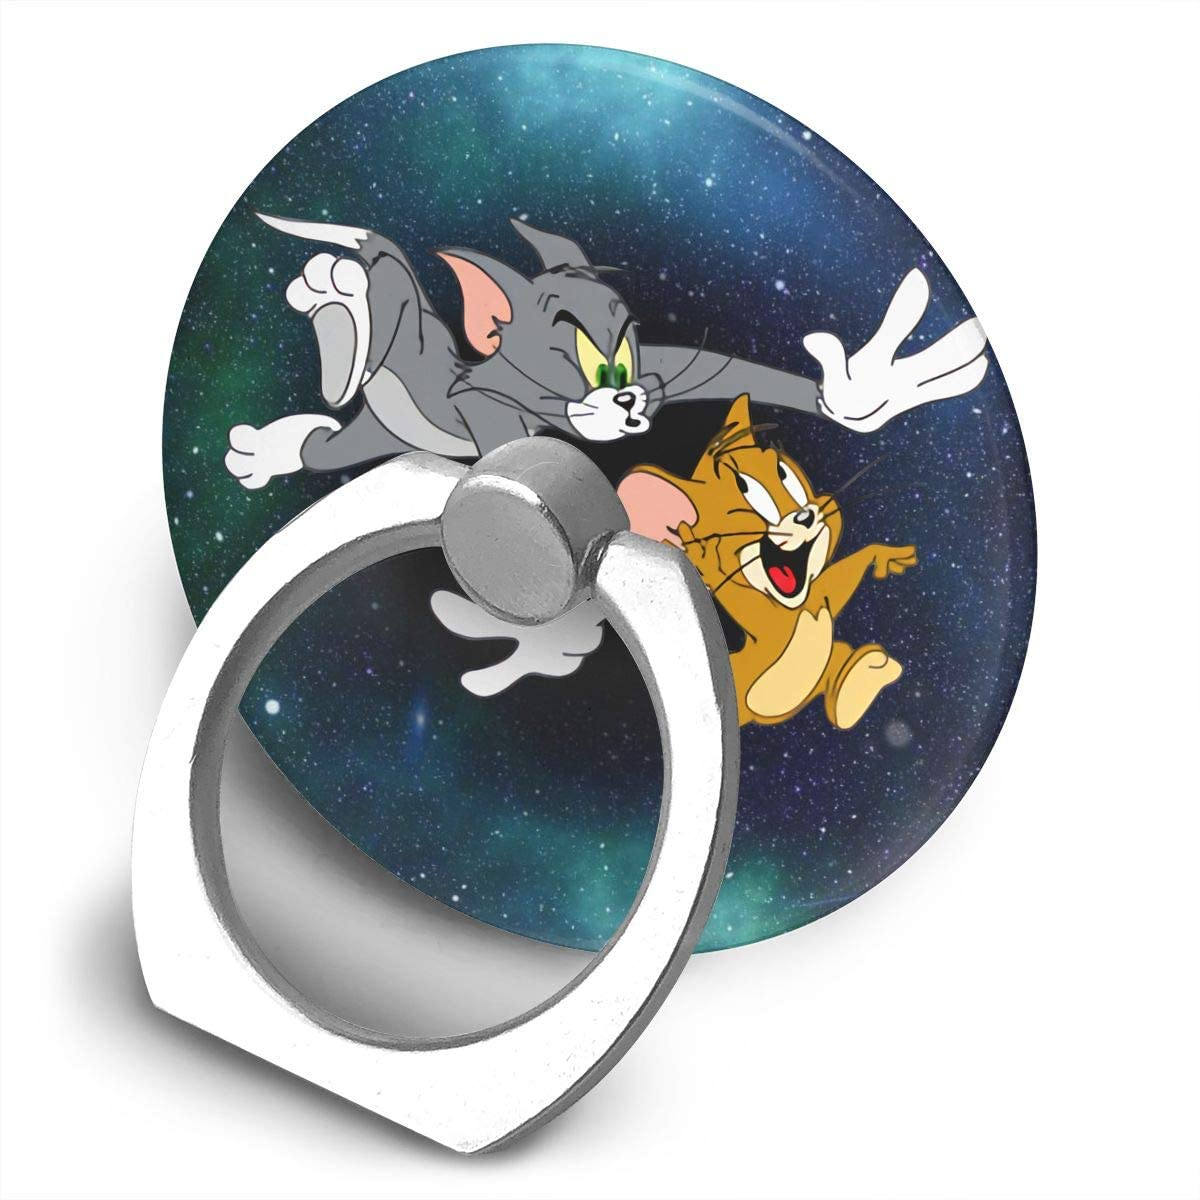 Tom & Jerry On The Run Finger Stand Phone Grip Holder Grip Mounts Cellphone